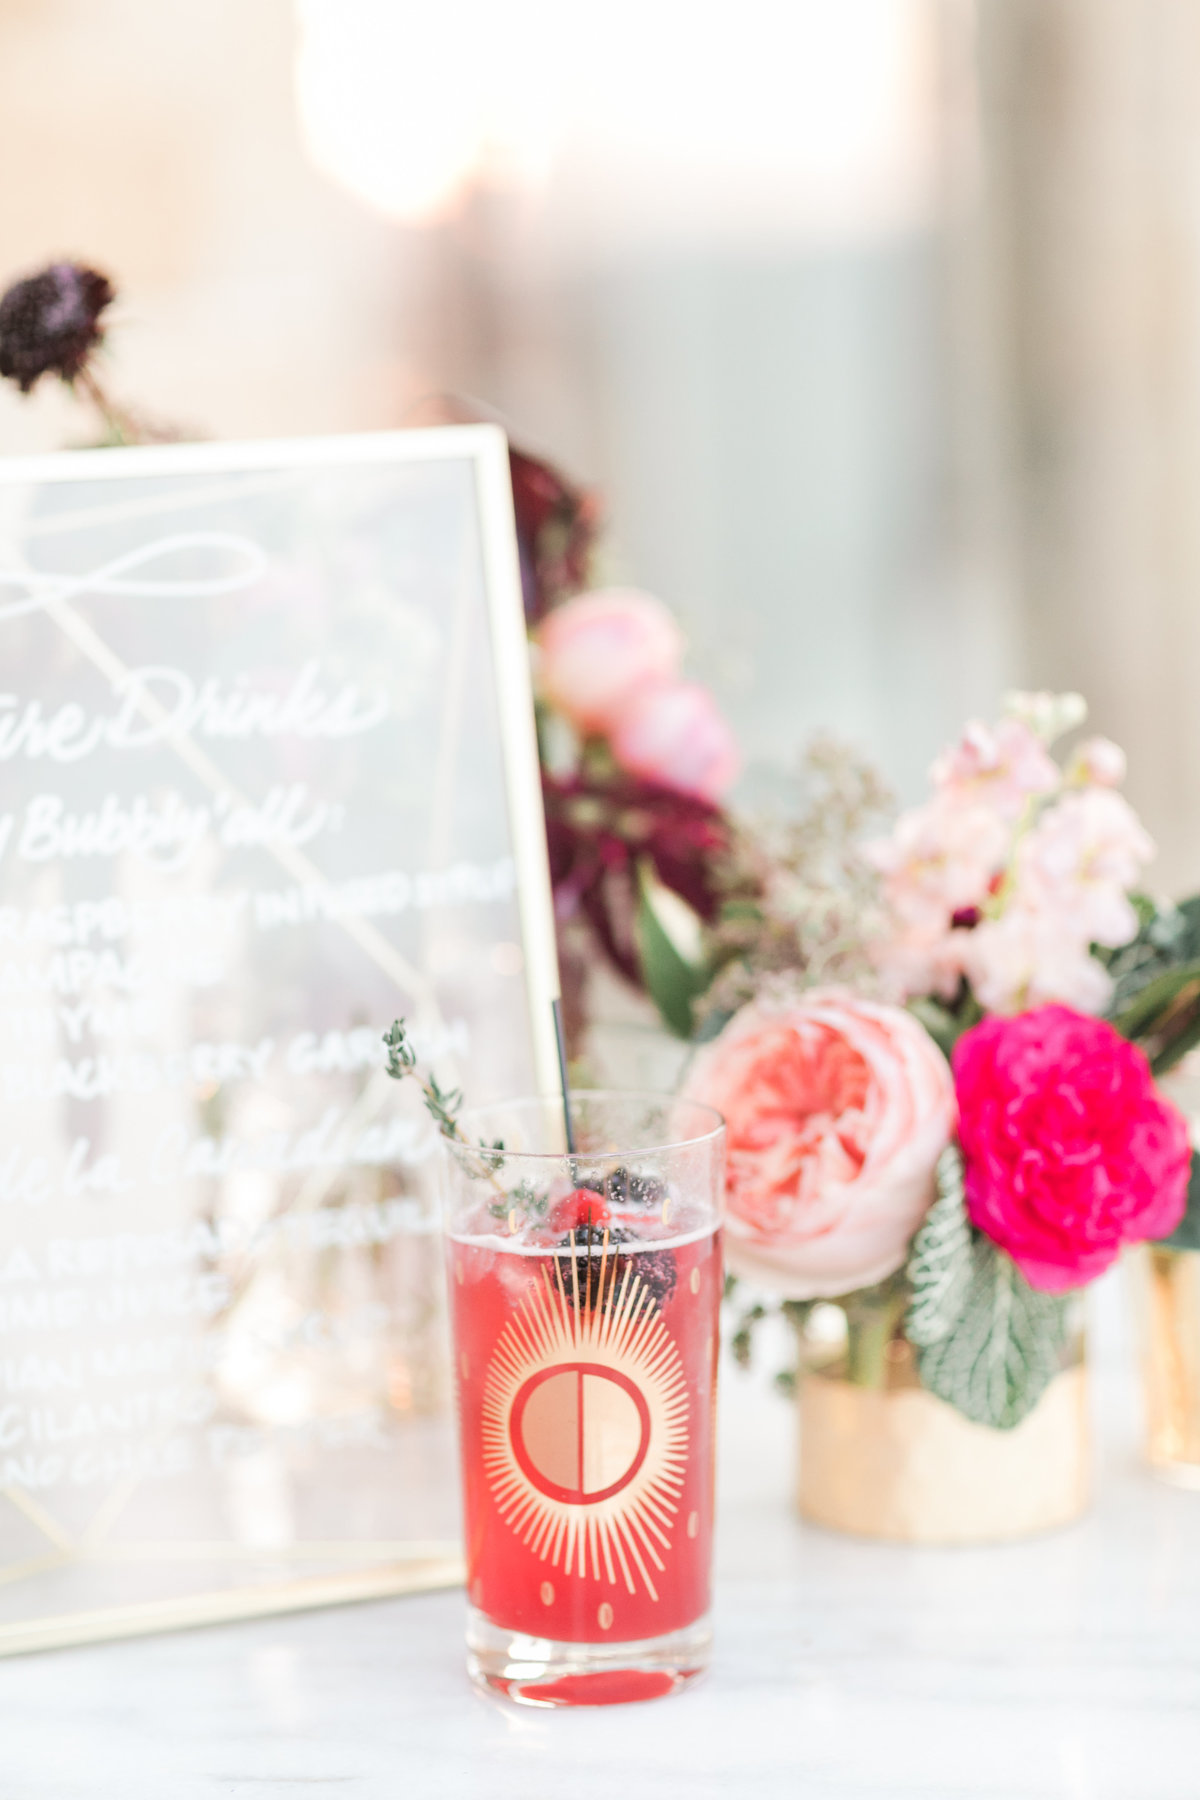 Malibu_Rocky_Oaks_Wedding_Inbal_Dror_Valorie_Darling_Photography - 131 of 160